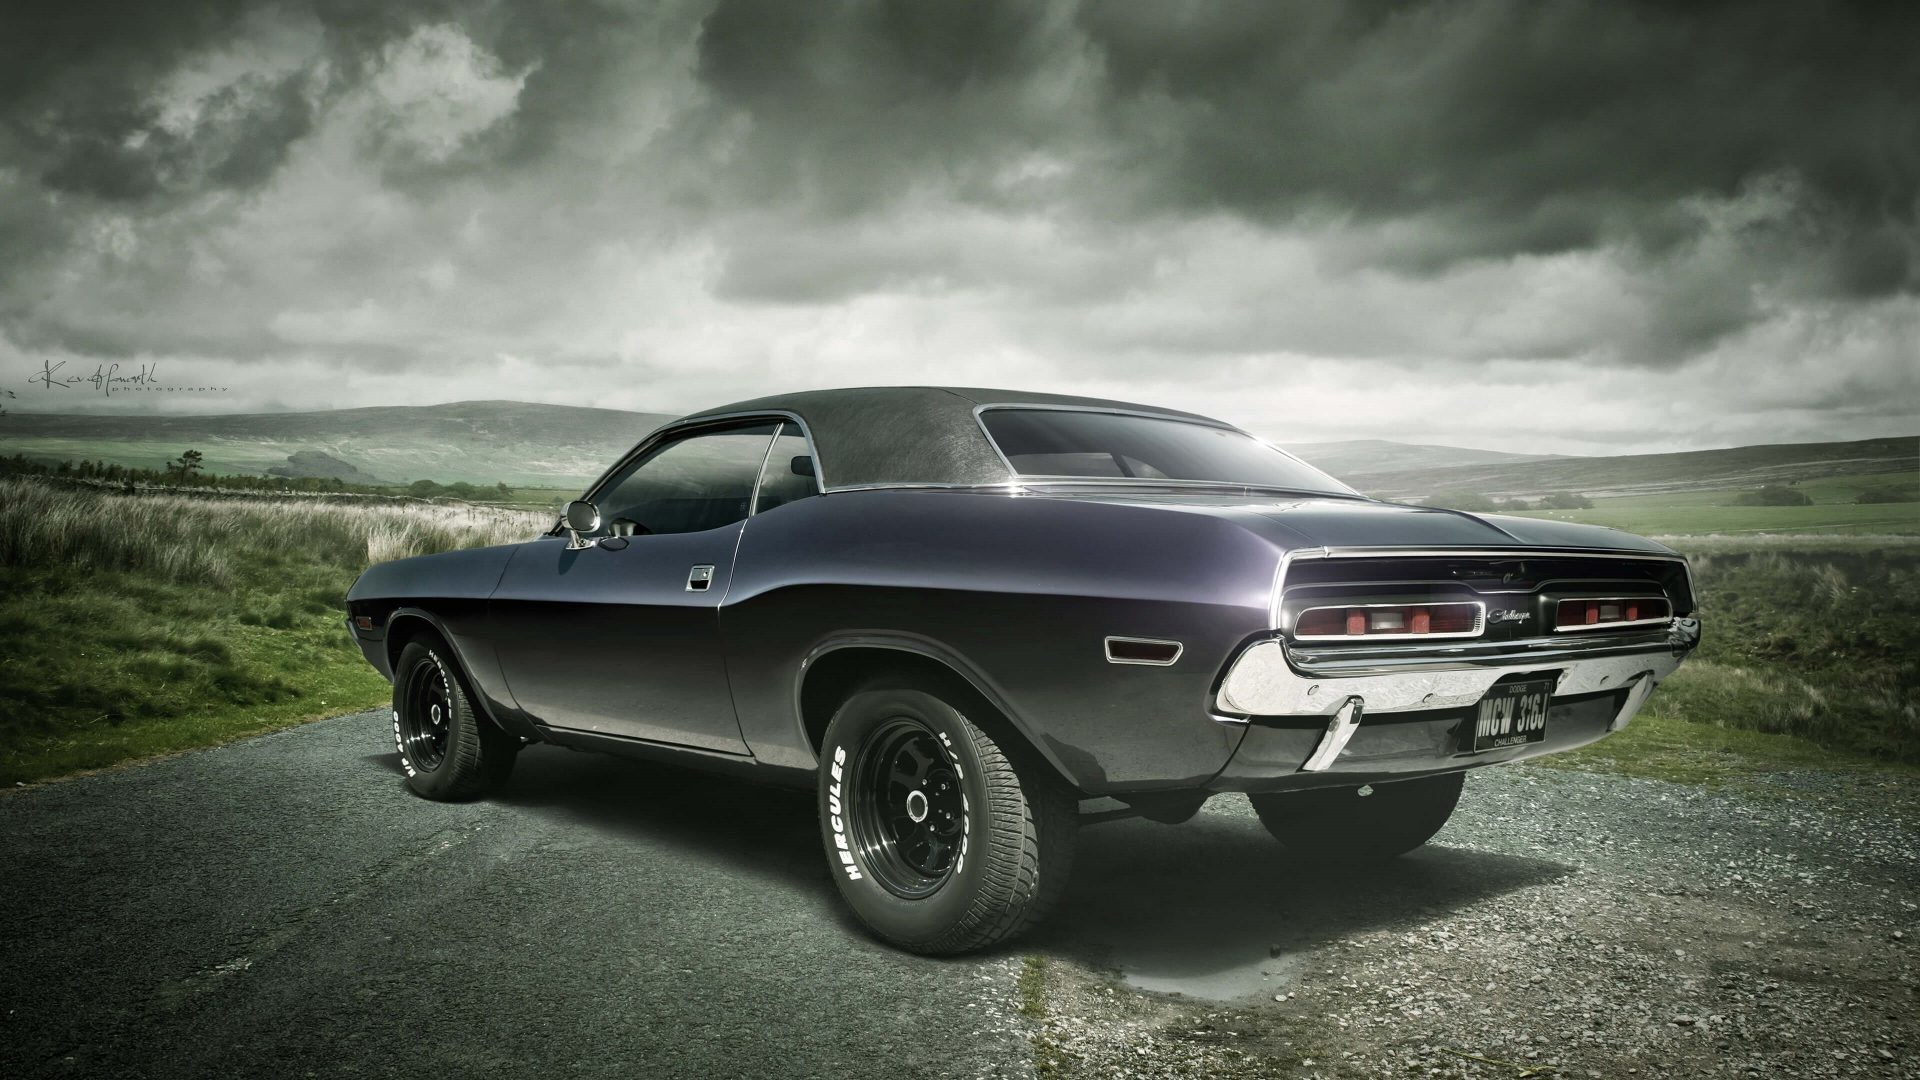 Muscle Cars In 1920x1080 Wallpapers (65+ Images